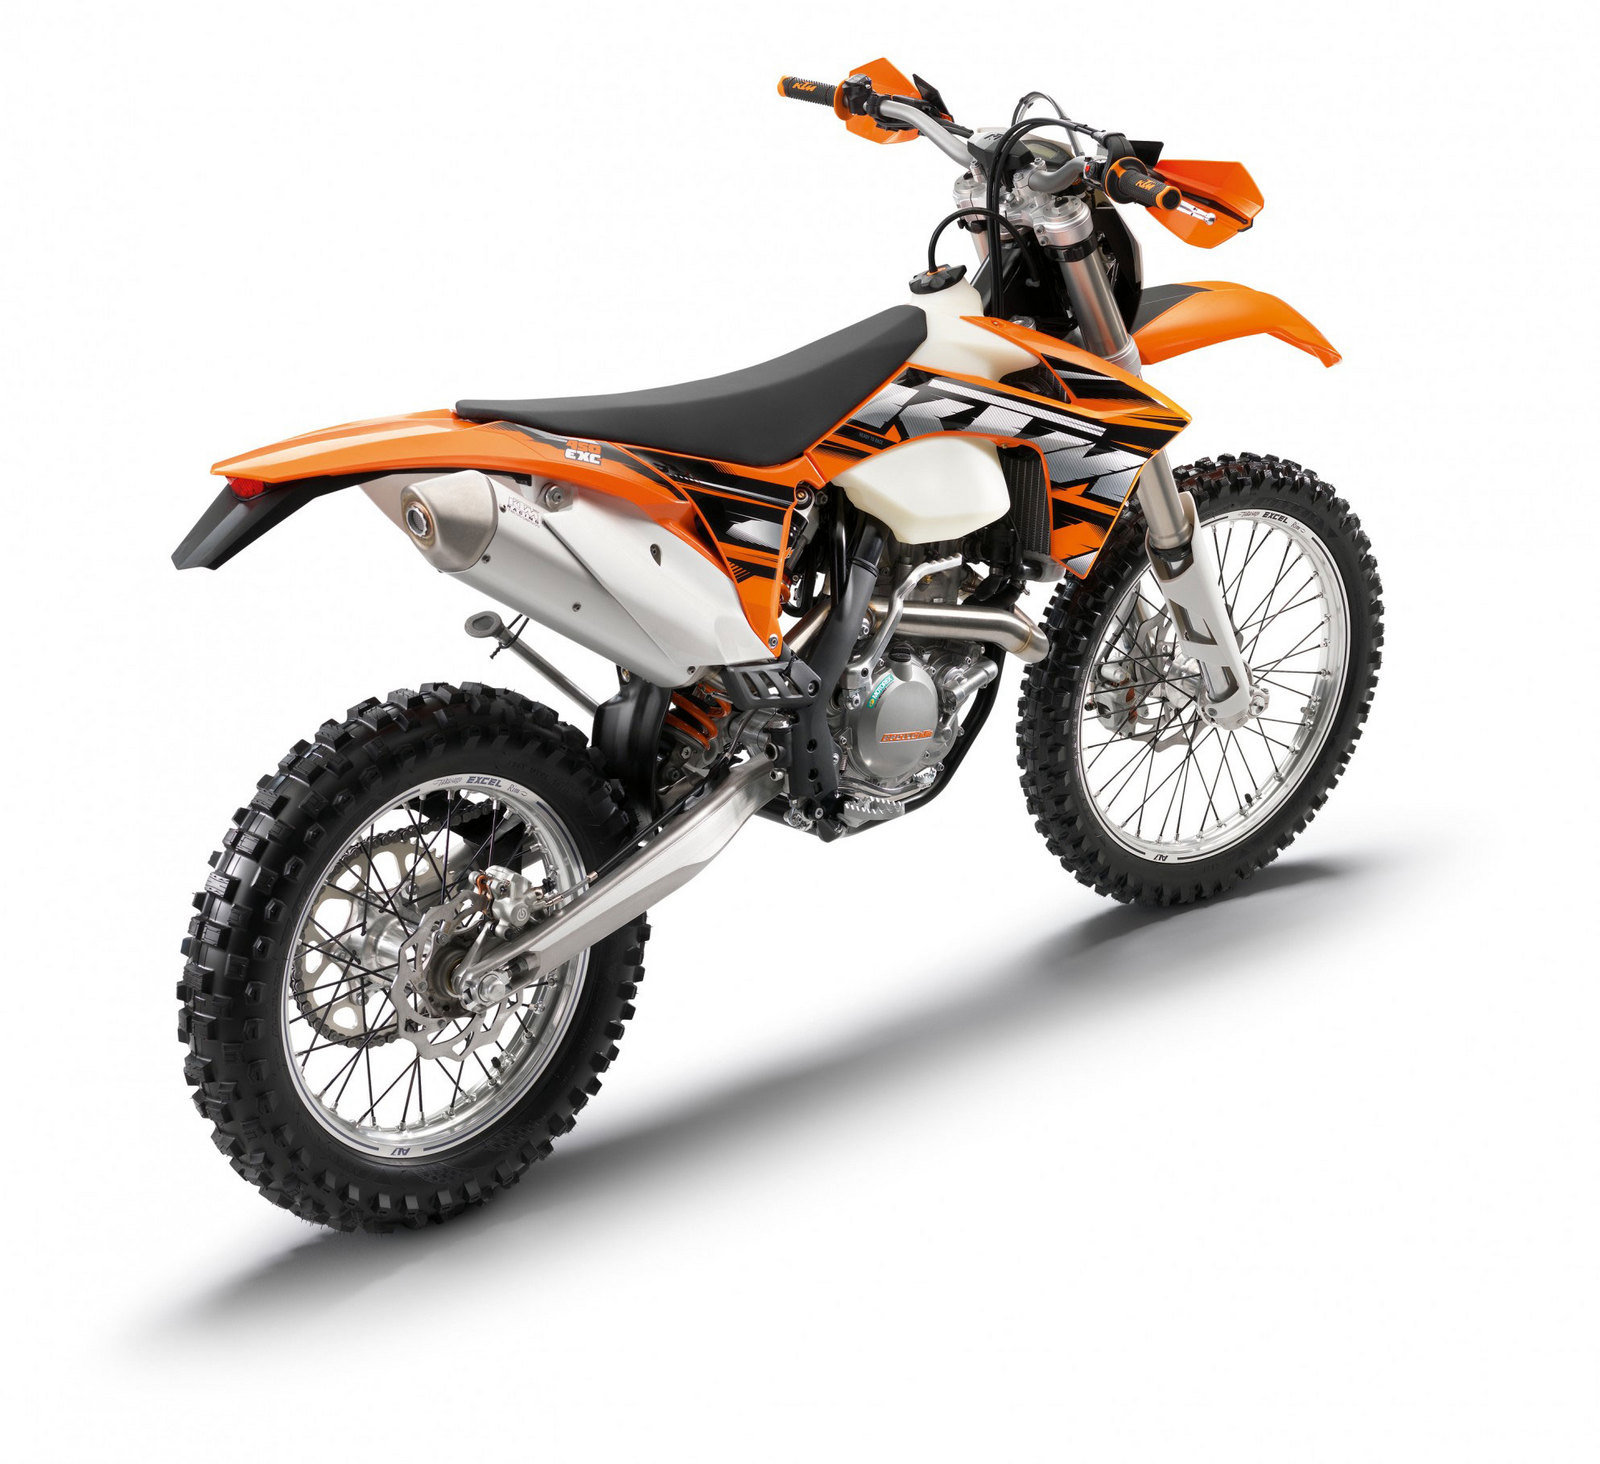 2013 ktm 450 exc picture 492725 motorcycle review top speed. Black Bedroom Furniture Sets. Home Design Ideas